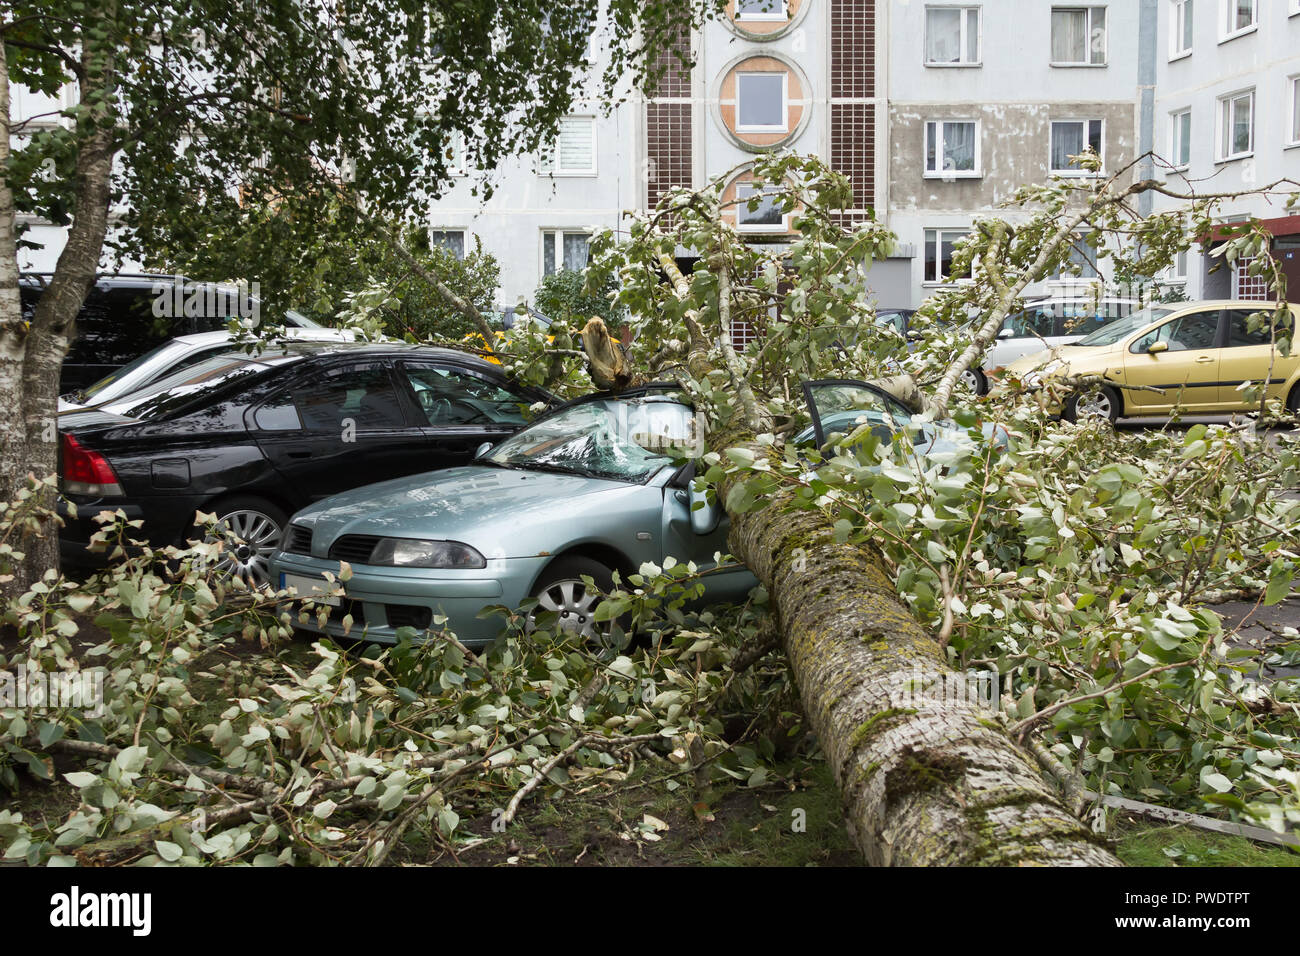 a strong september wind broke a tree that fell on a car parked nearby, disaster backgroiund Stock Photo